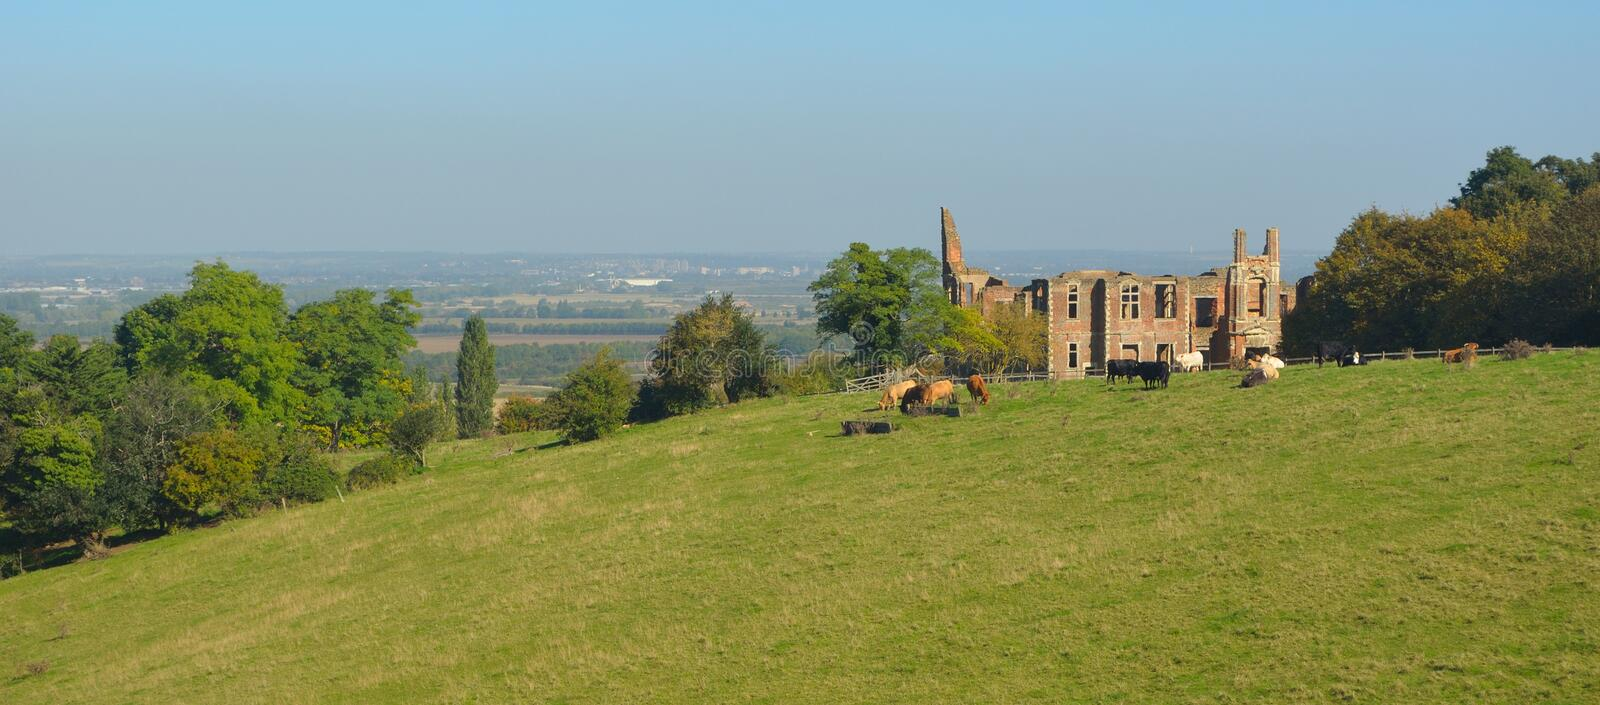 Houghton House Bedfordshire royalty free stock photos